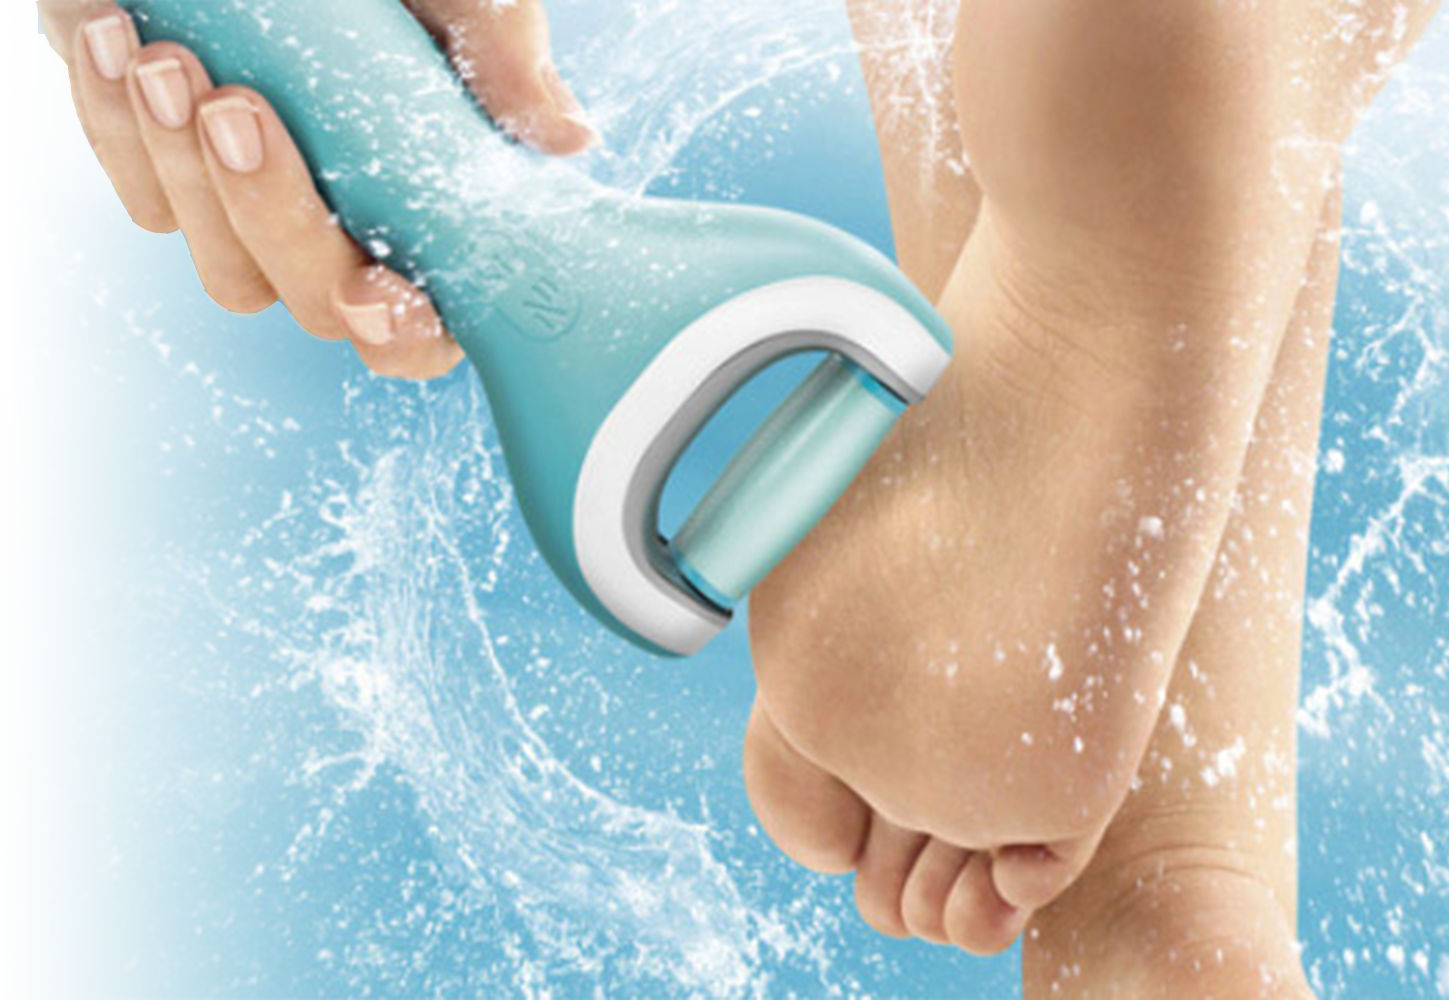 Why are Scholl footcare products right for me?